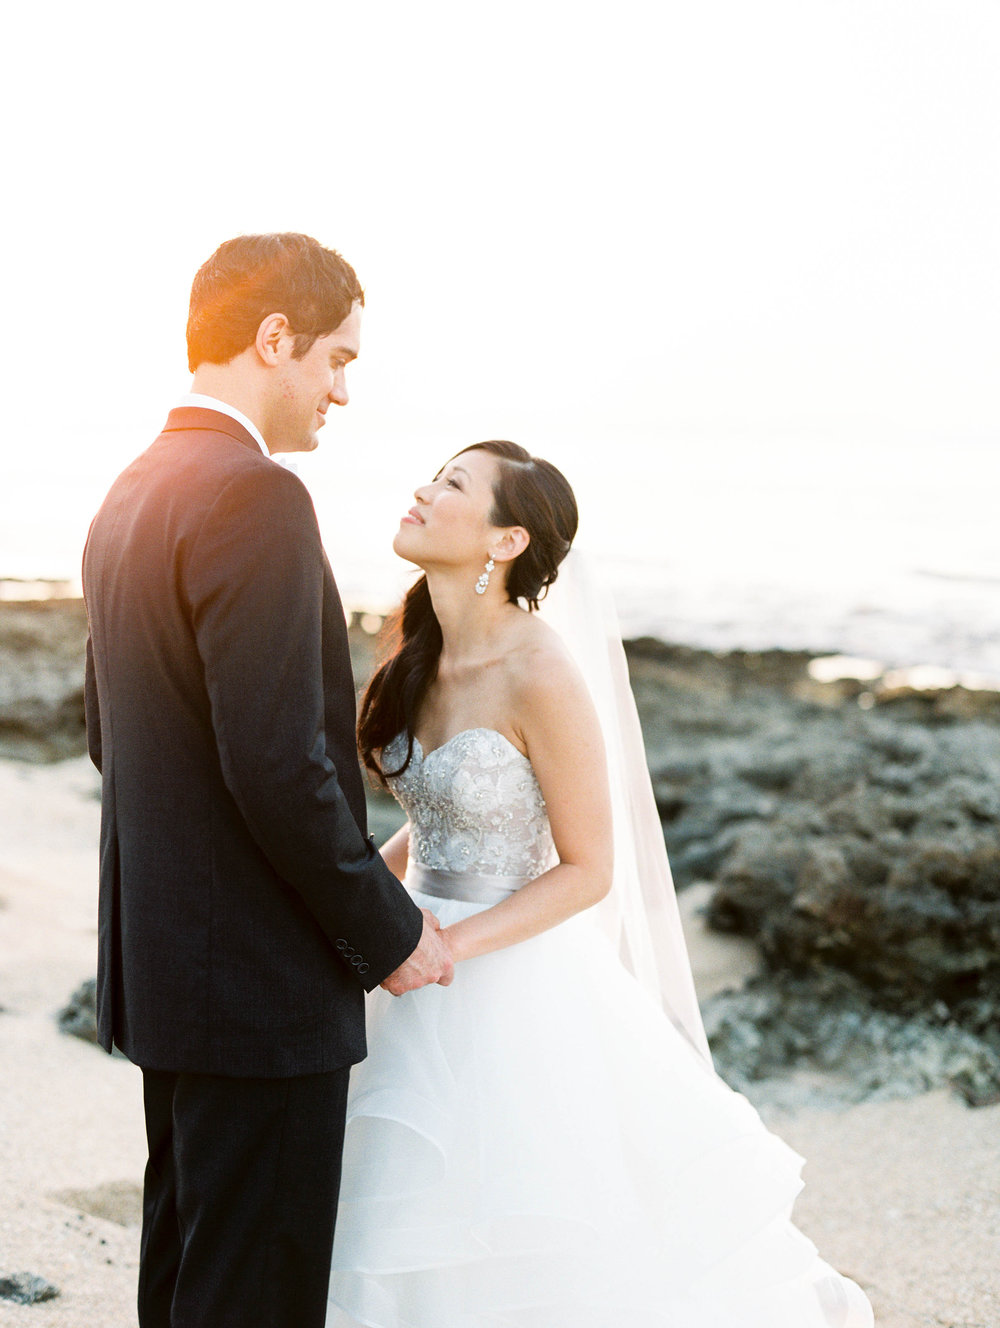 Michelle Garibay Events | Elegant Oahu Wedding | Loulu Palm Estate | Destination Wedding Planner | Beach Sunset Wedding